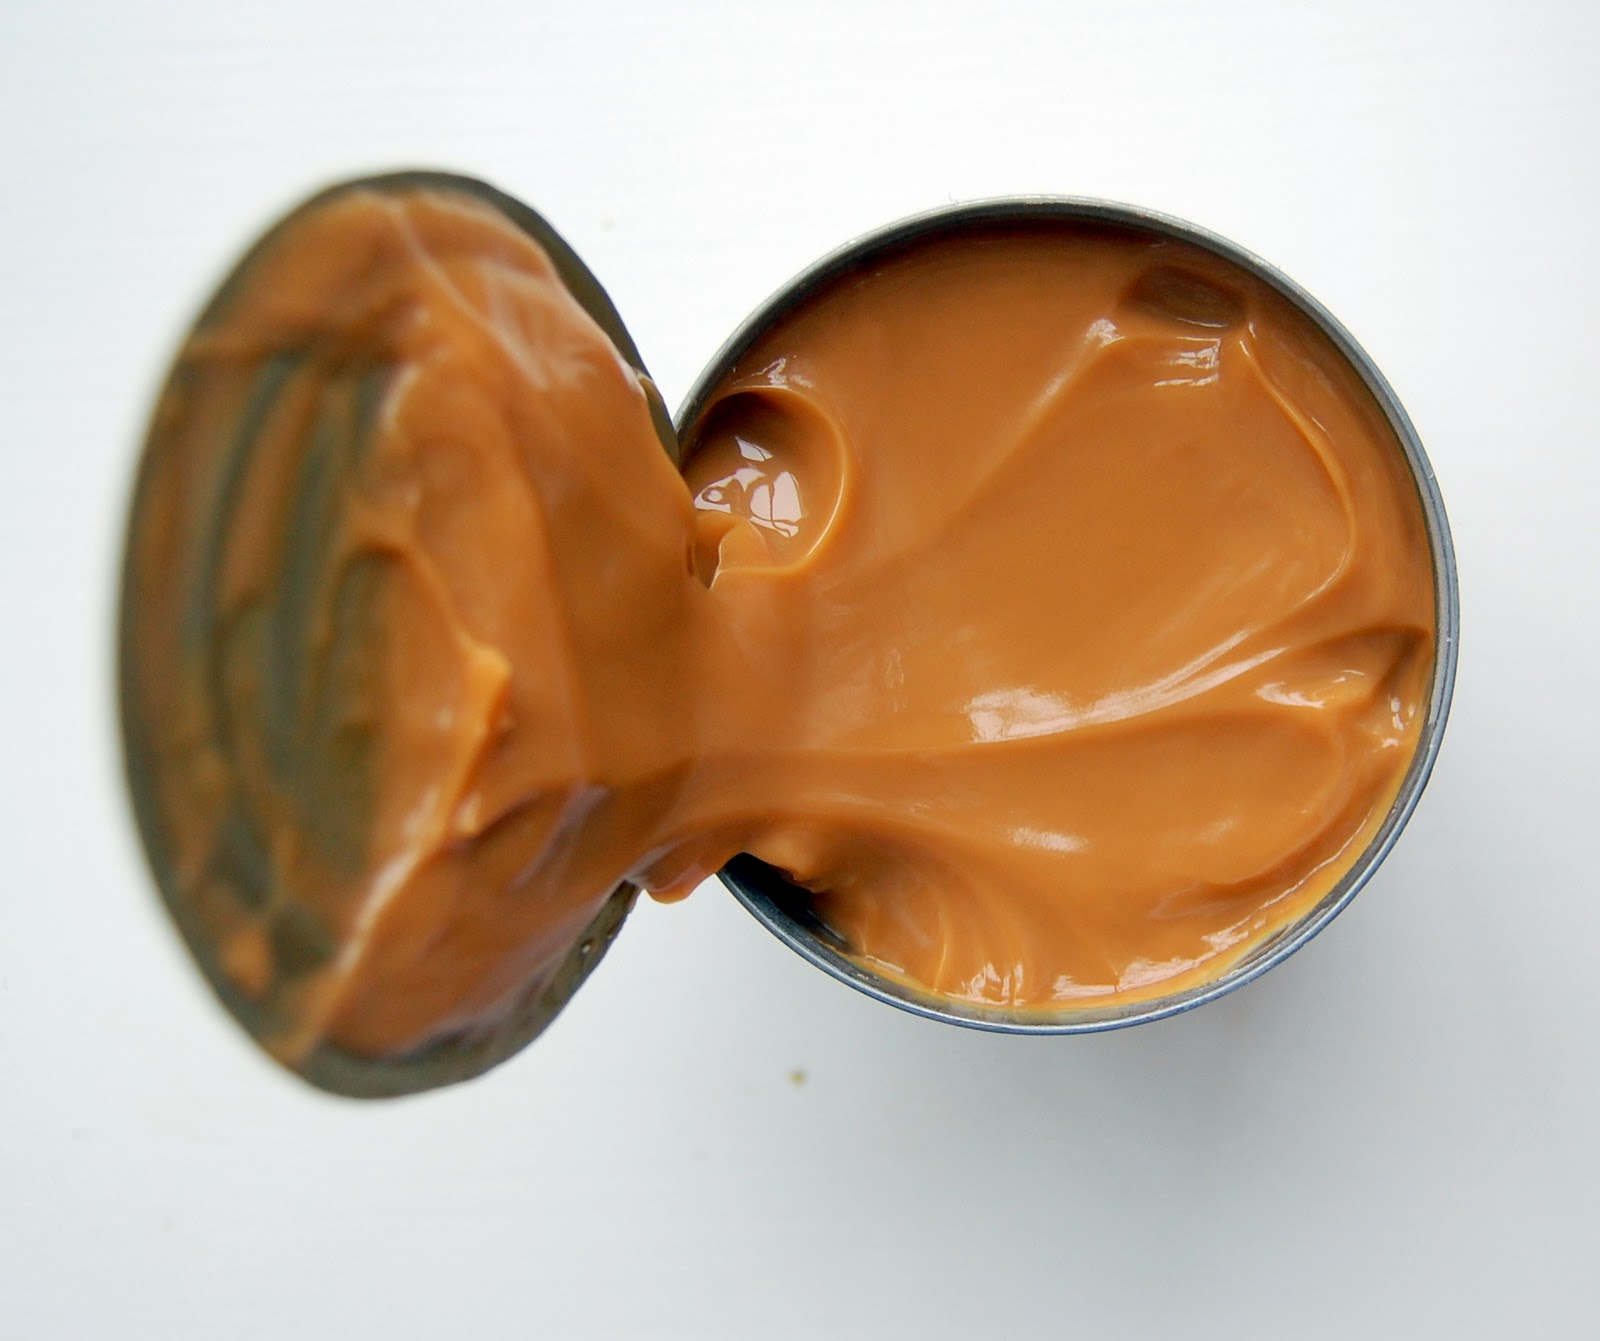 Blogging Foods: Homemade Dulce de Leche